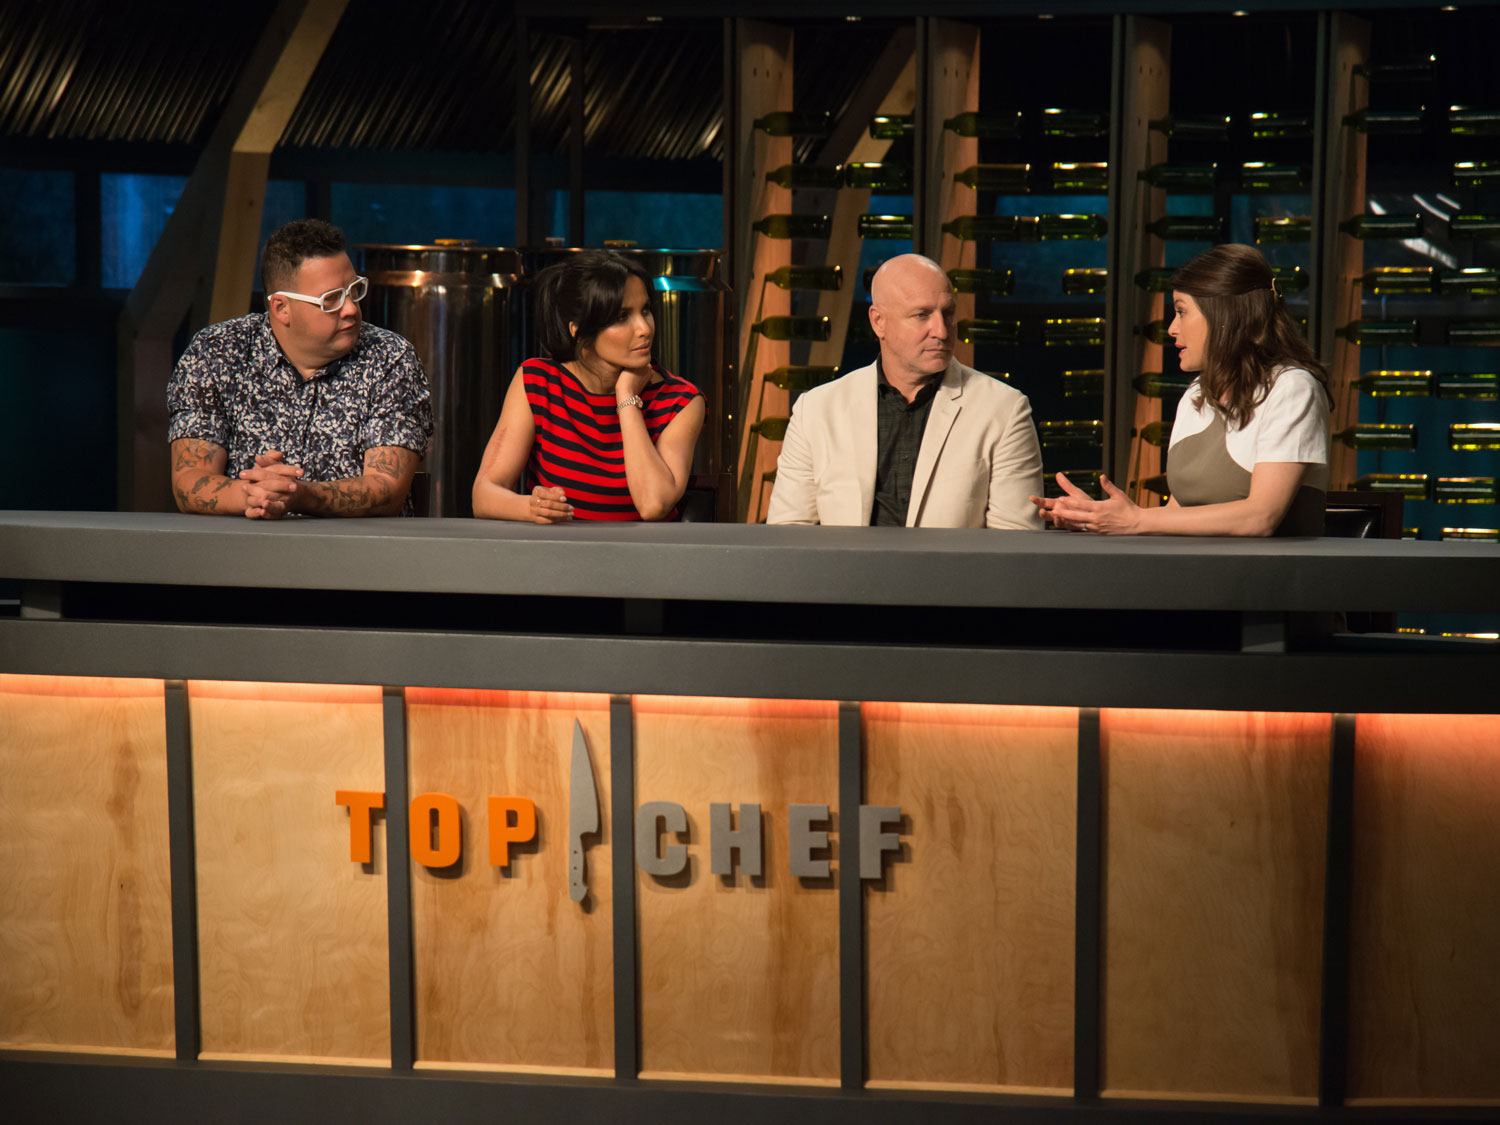 season 15 premiere of Top Chef